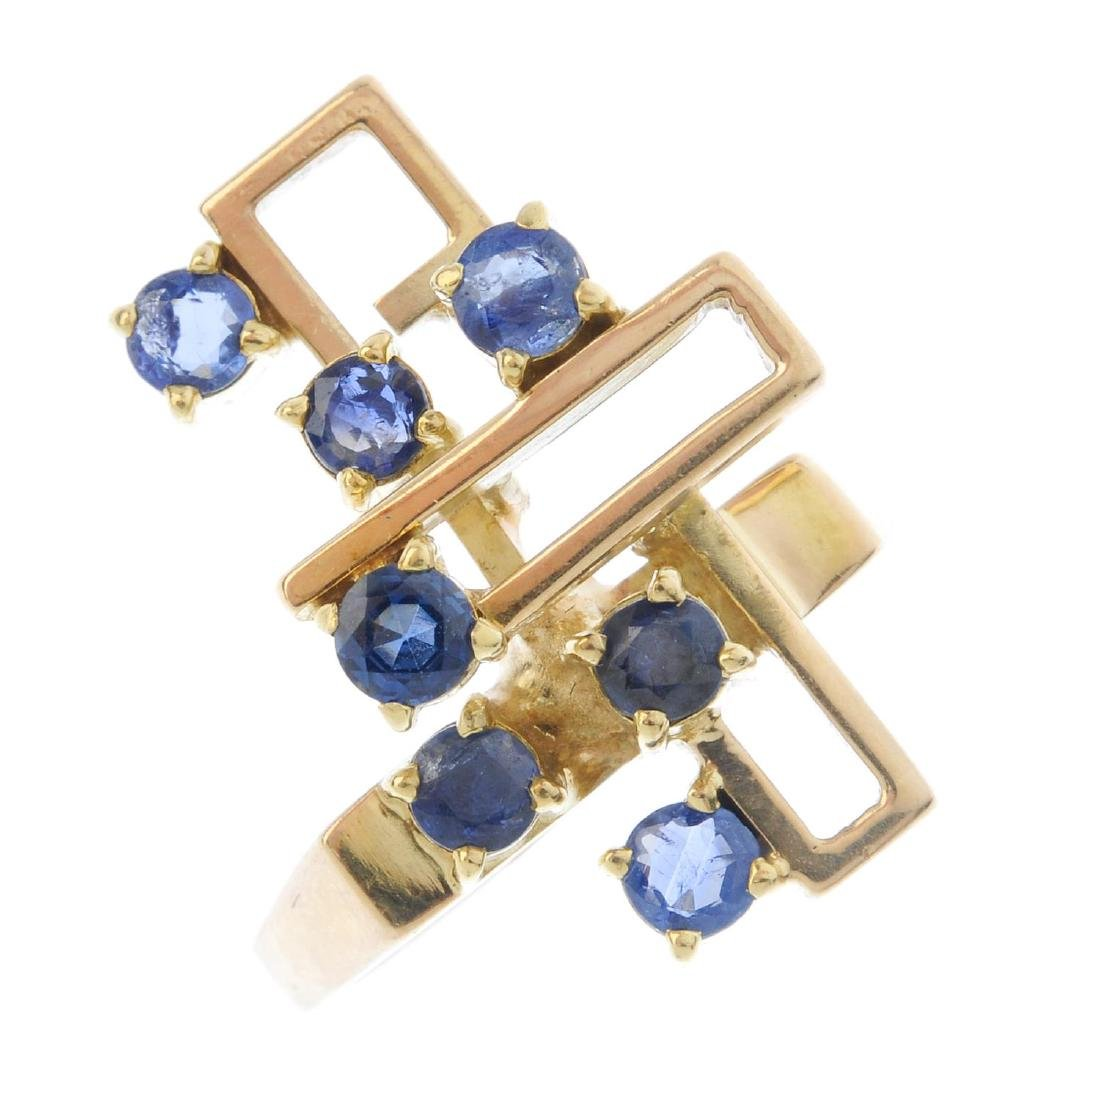 A sapphire dress ring. Of geometric design, with the